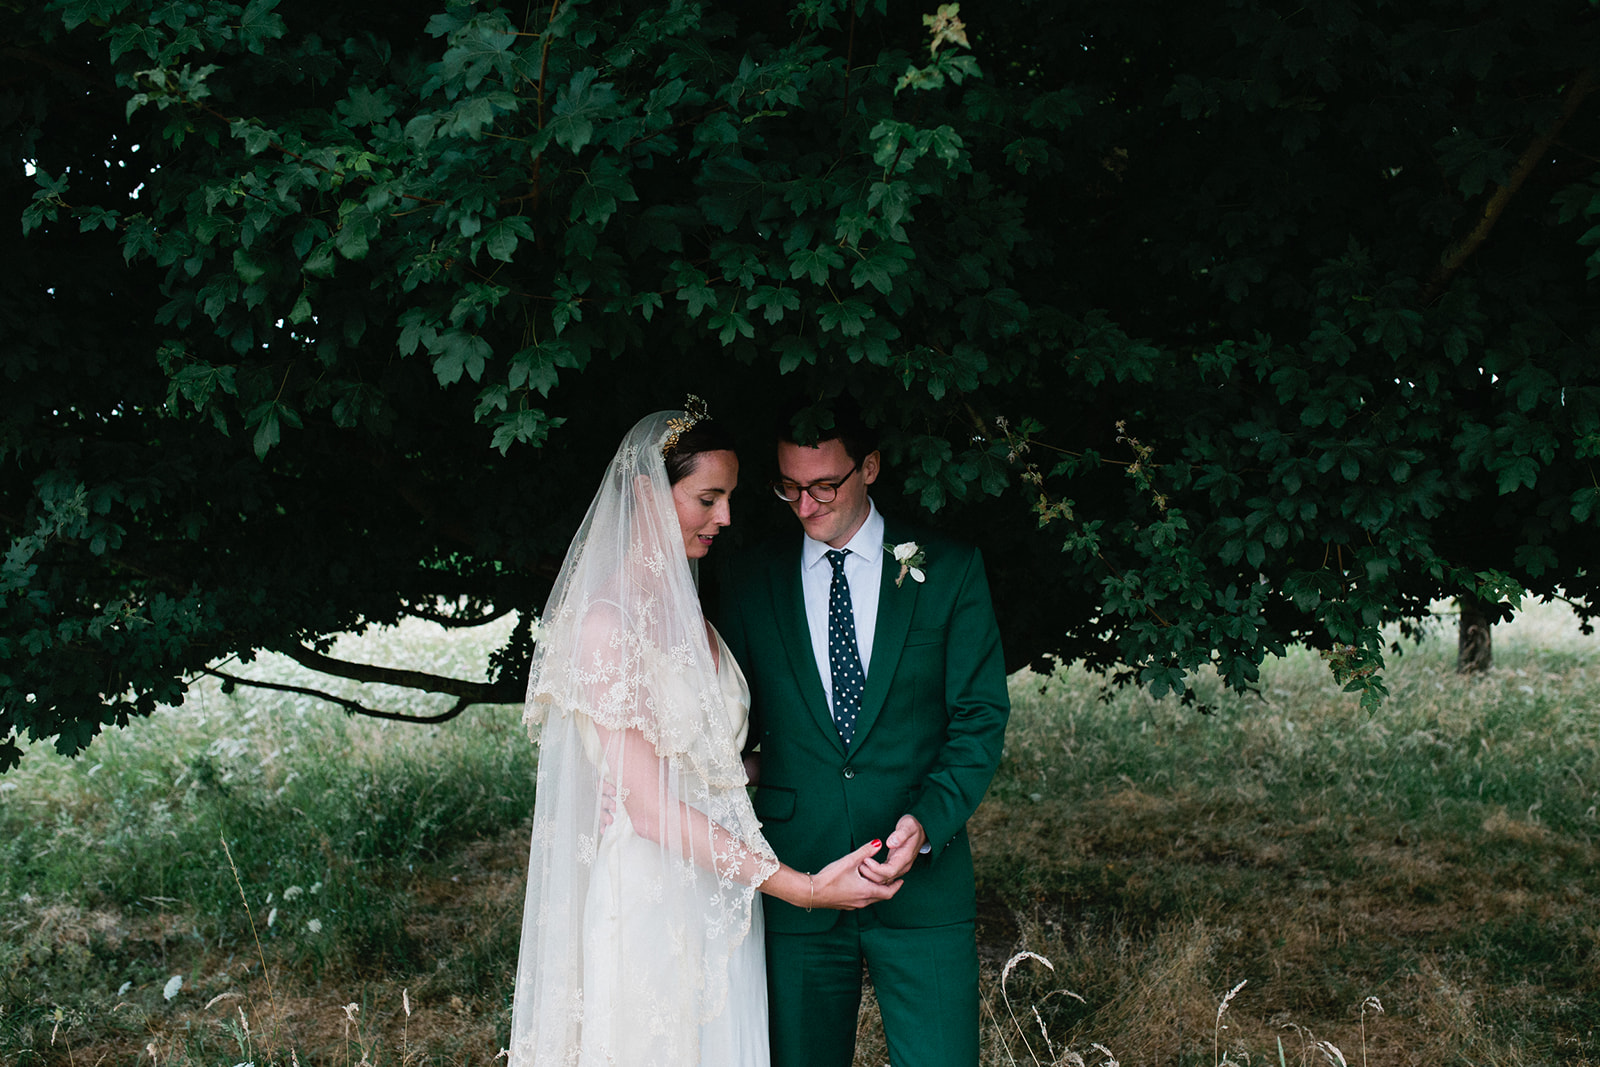 A bride and groom take time for portraits at their Canterbury Marquee Wedding by Matilda Delves who is a Natural Kent Wedding Photographer who photographs in a natural style